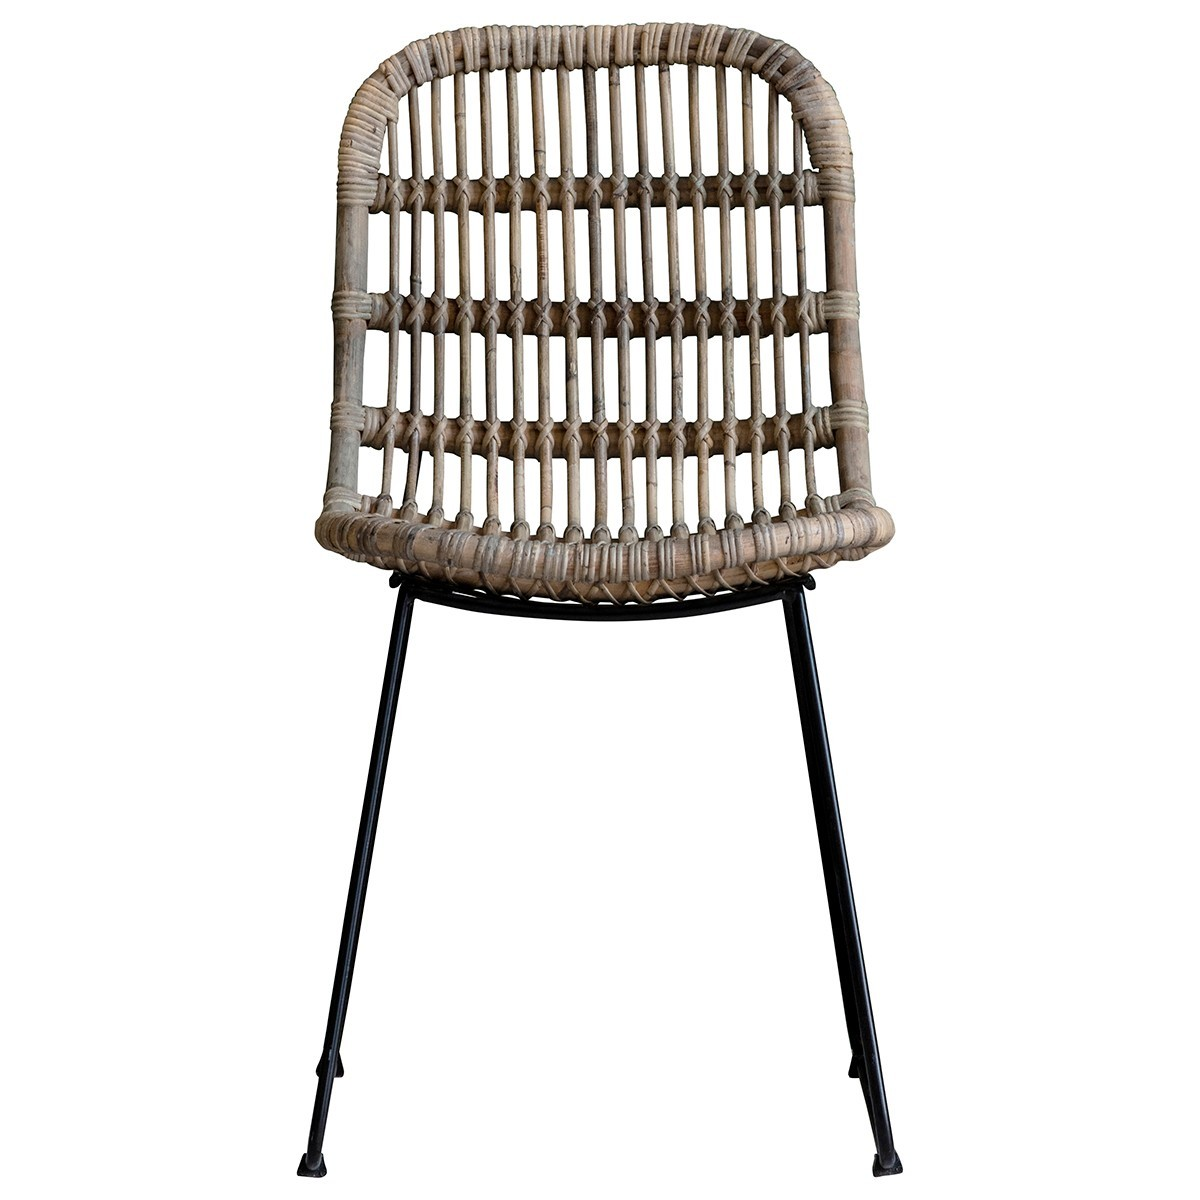 Vestil Rattan & Iron Dining Chair, Set of 2, Natural